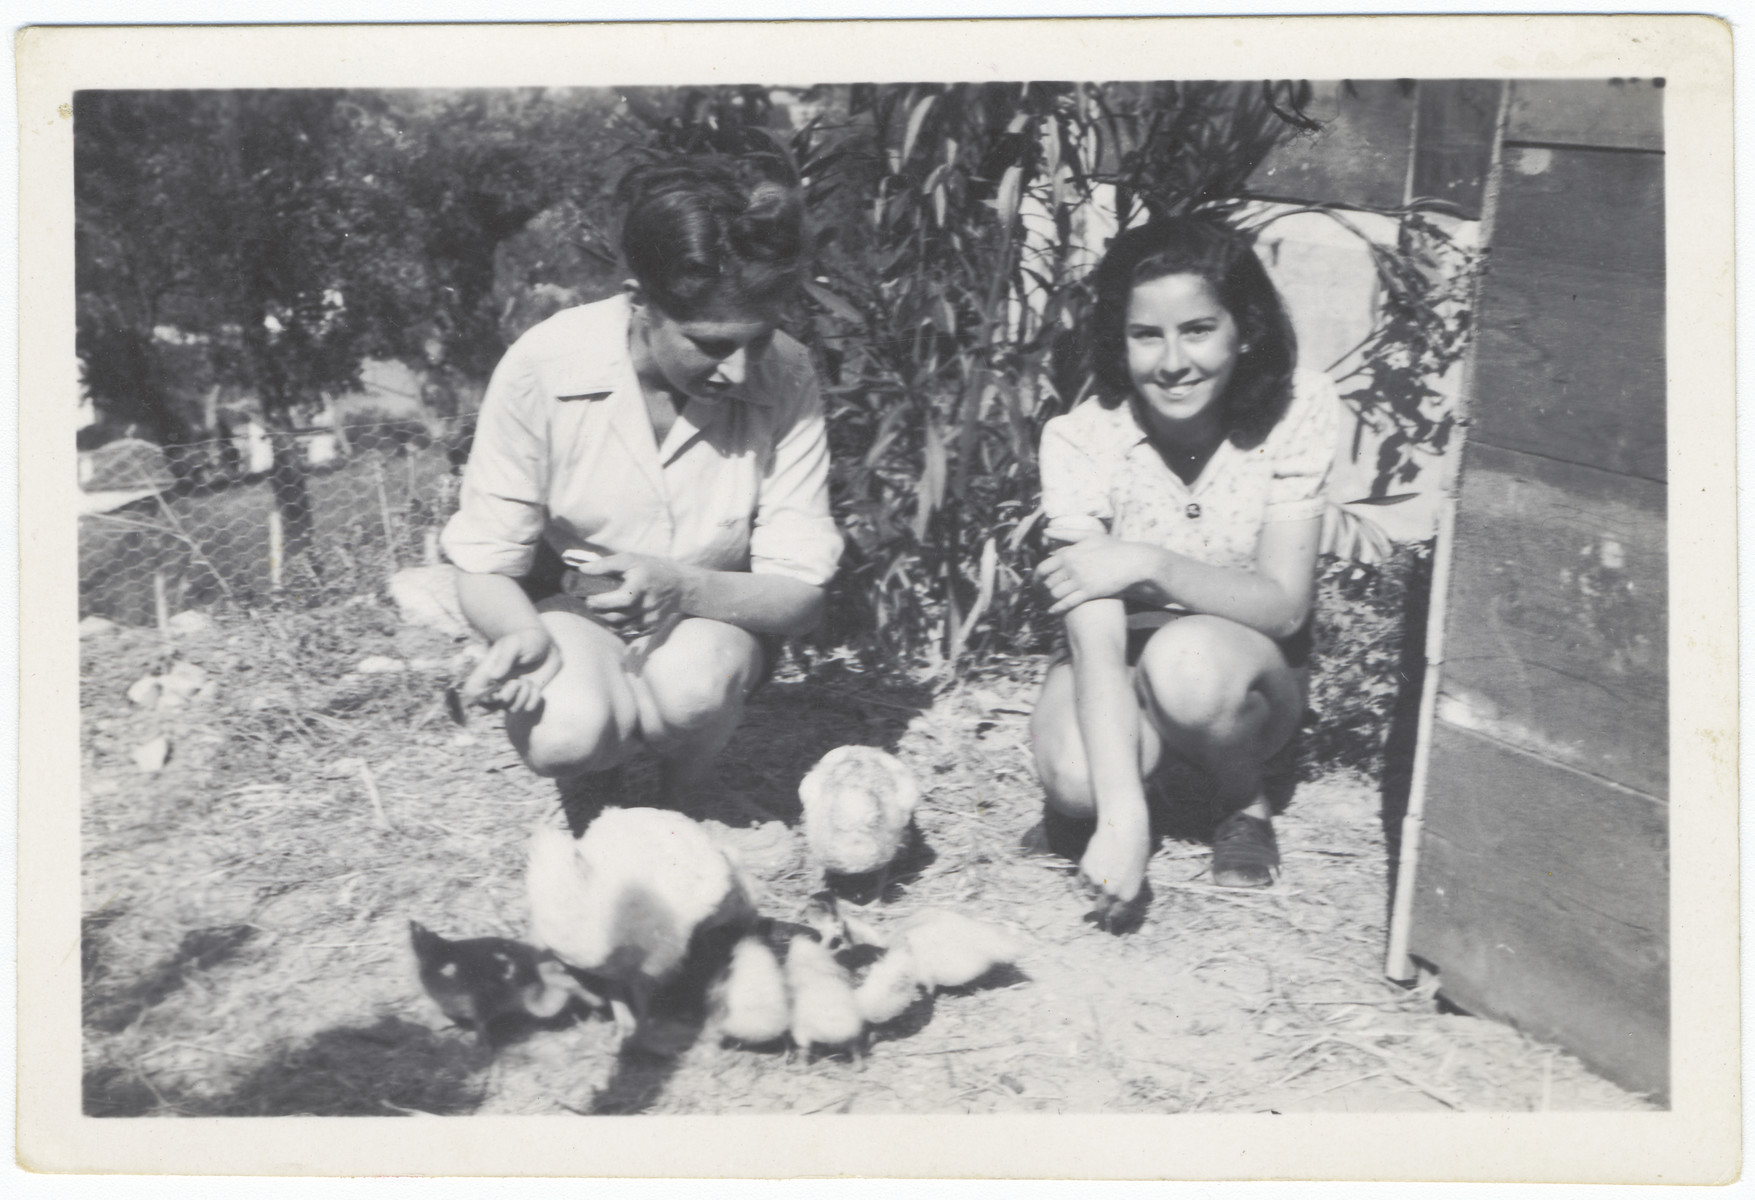 A Jewish mother and her teenage daughter feed ducks they are raising while living in the Italian zone near Menton.